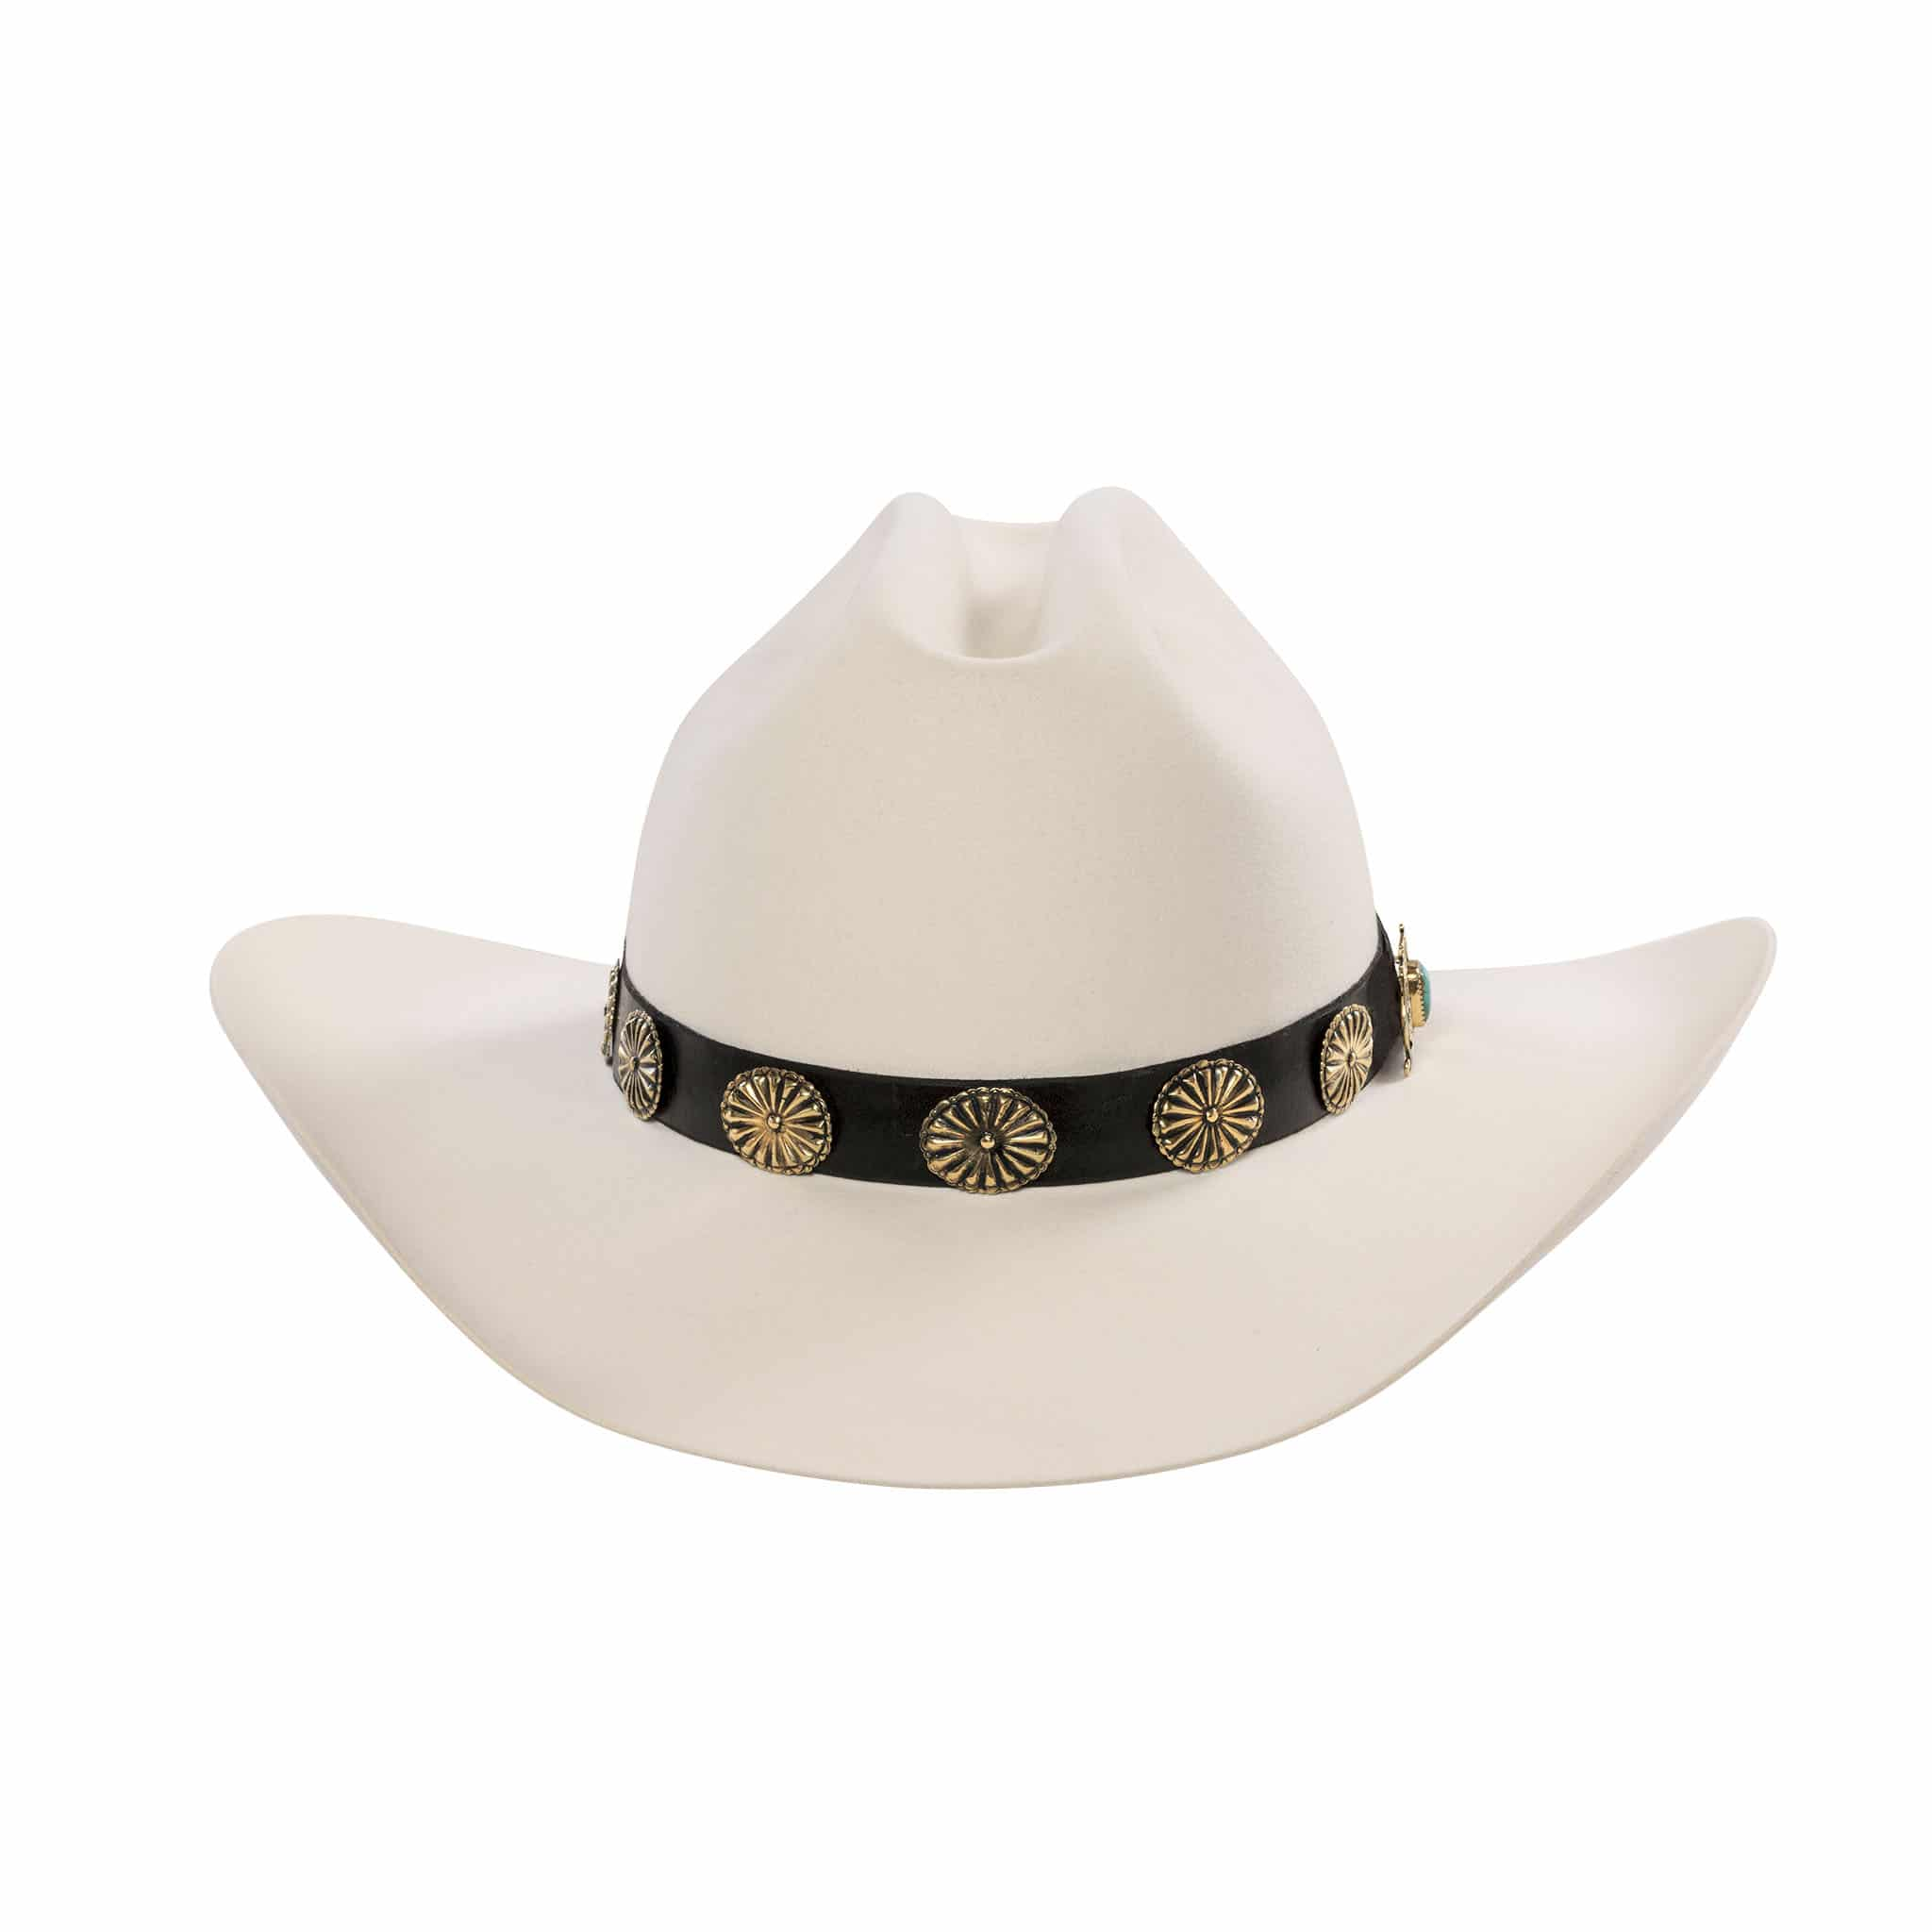 Low Whistle White Fur Felt Hand-Made Hat with 18 karat Gold concho hat band.